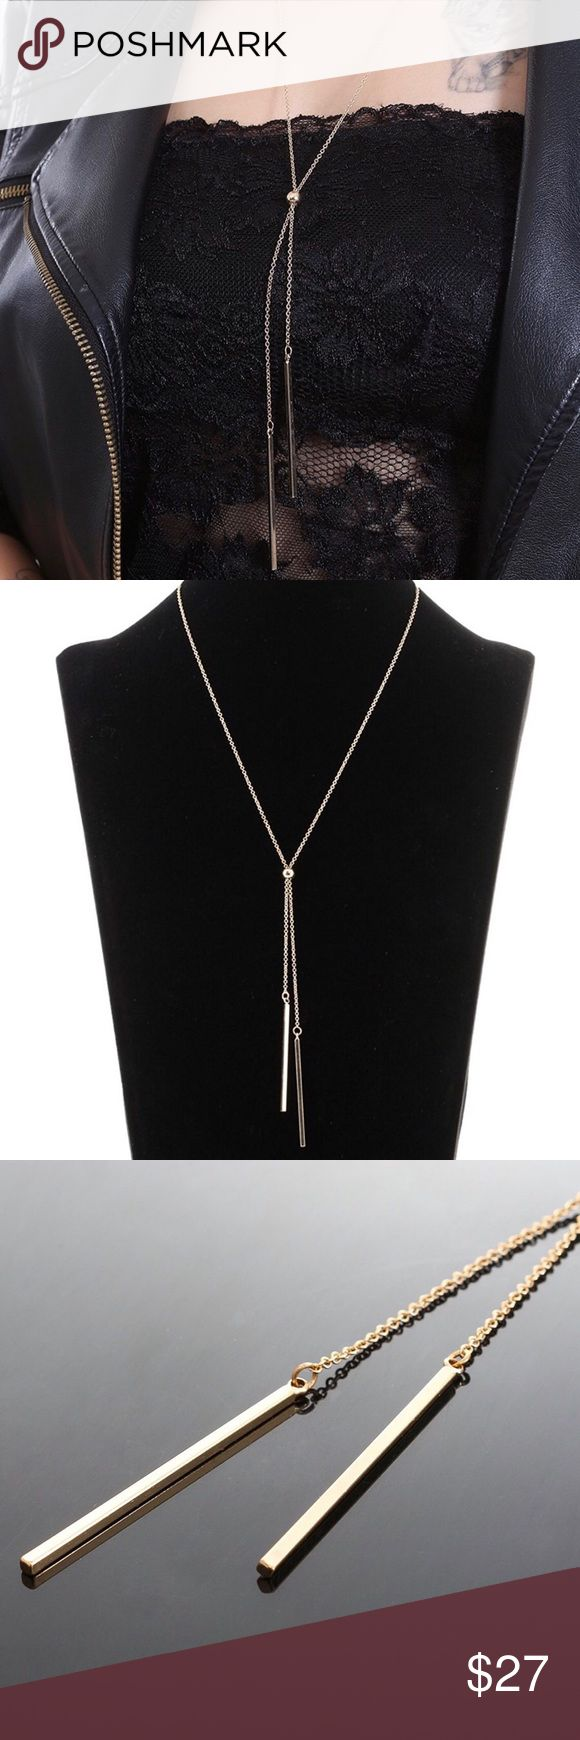 Gold Vertical Bars Necklace NWT Gold Vertical Bars Necklace  We're starting to add jewelry and this bar necklace is the perfect first piece  Features: gold color **not real gold**, long chain, chain comes together with a bead and two vertical bars hanging from the bead, one bar is lower than the other  BAR NECKLACE  Size: One Size Fits All  Stile Loft Boutique @stileloft  SL0220 Stile Loft Jewelry Necklaces